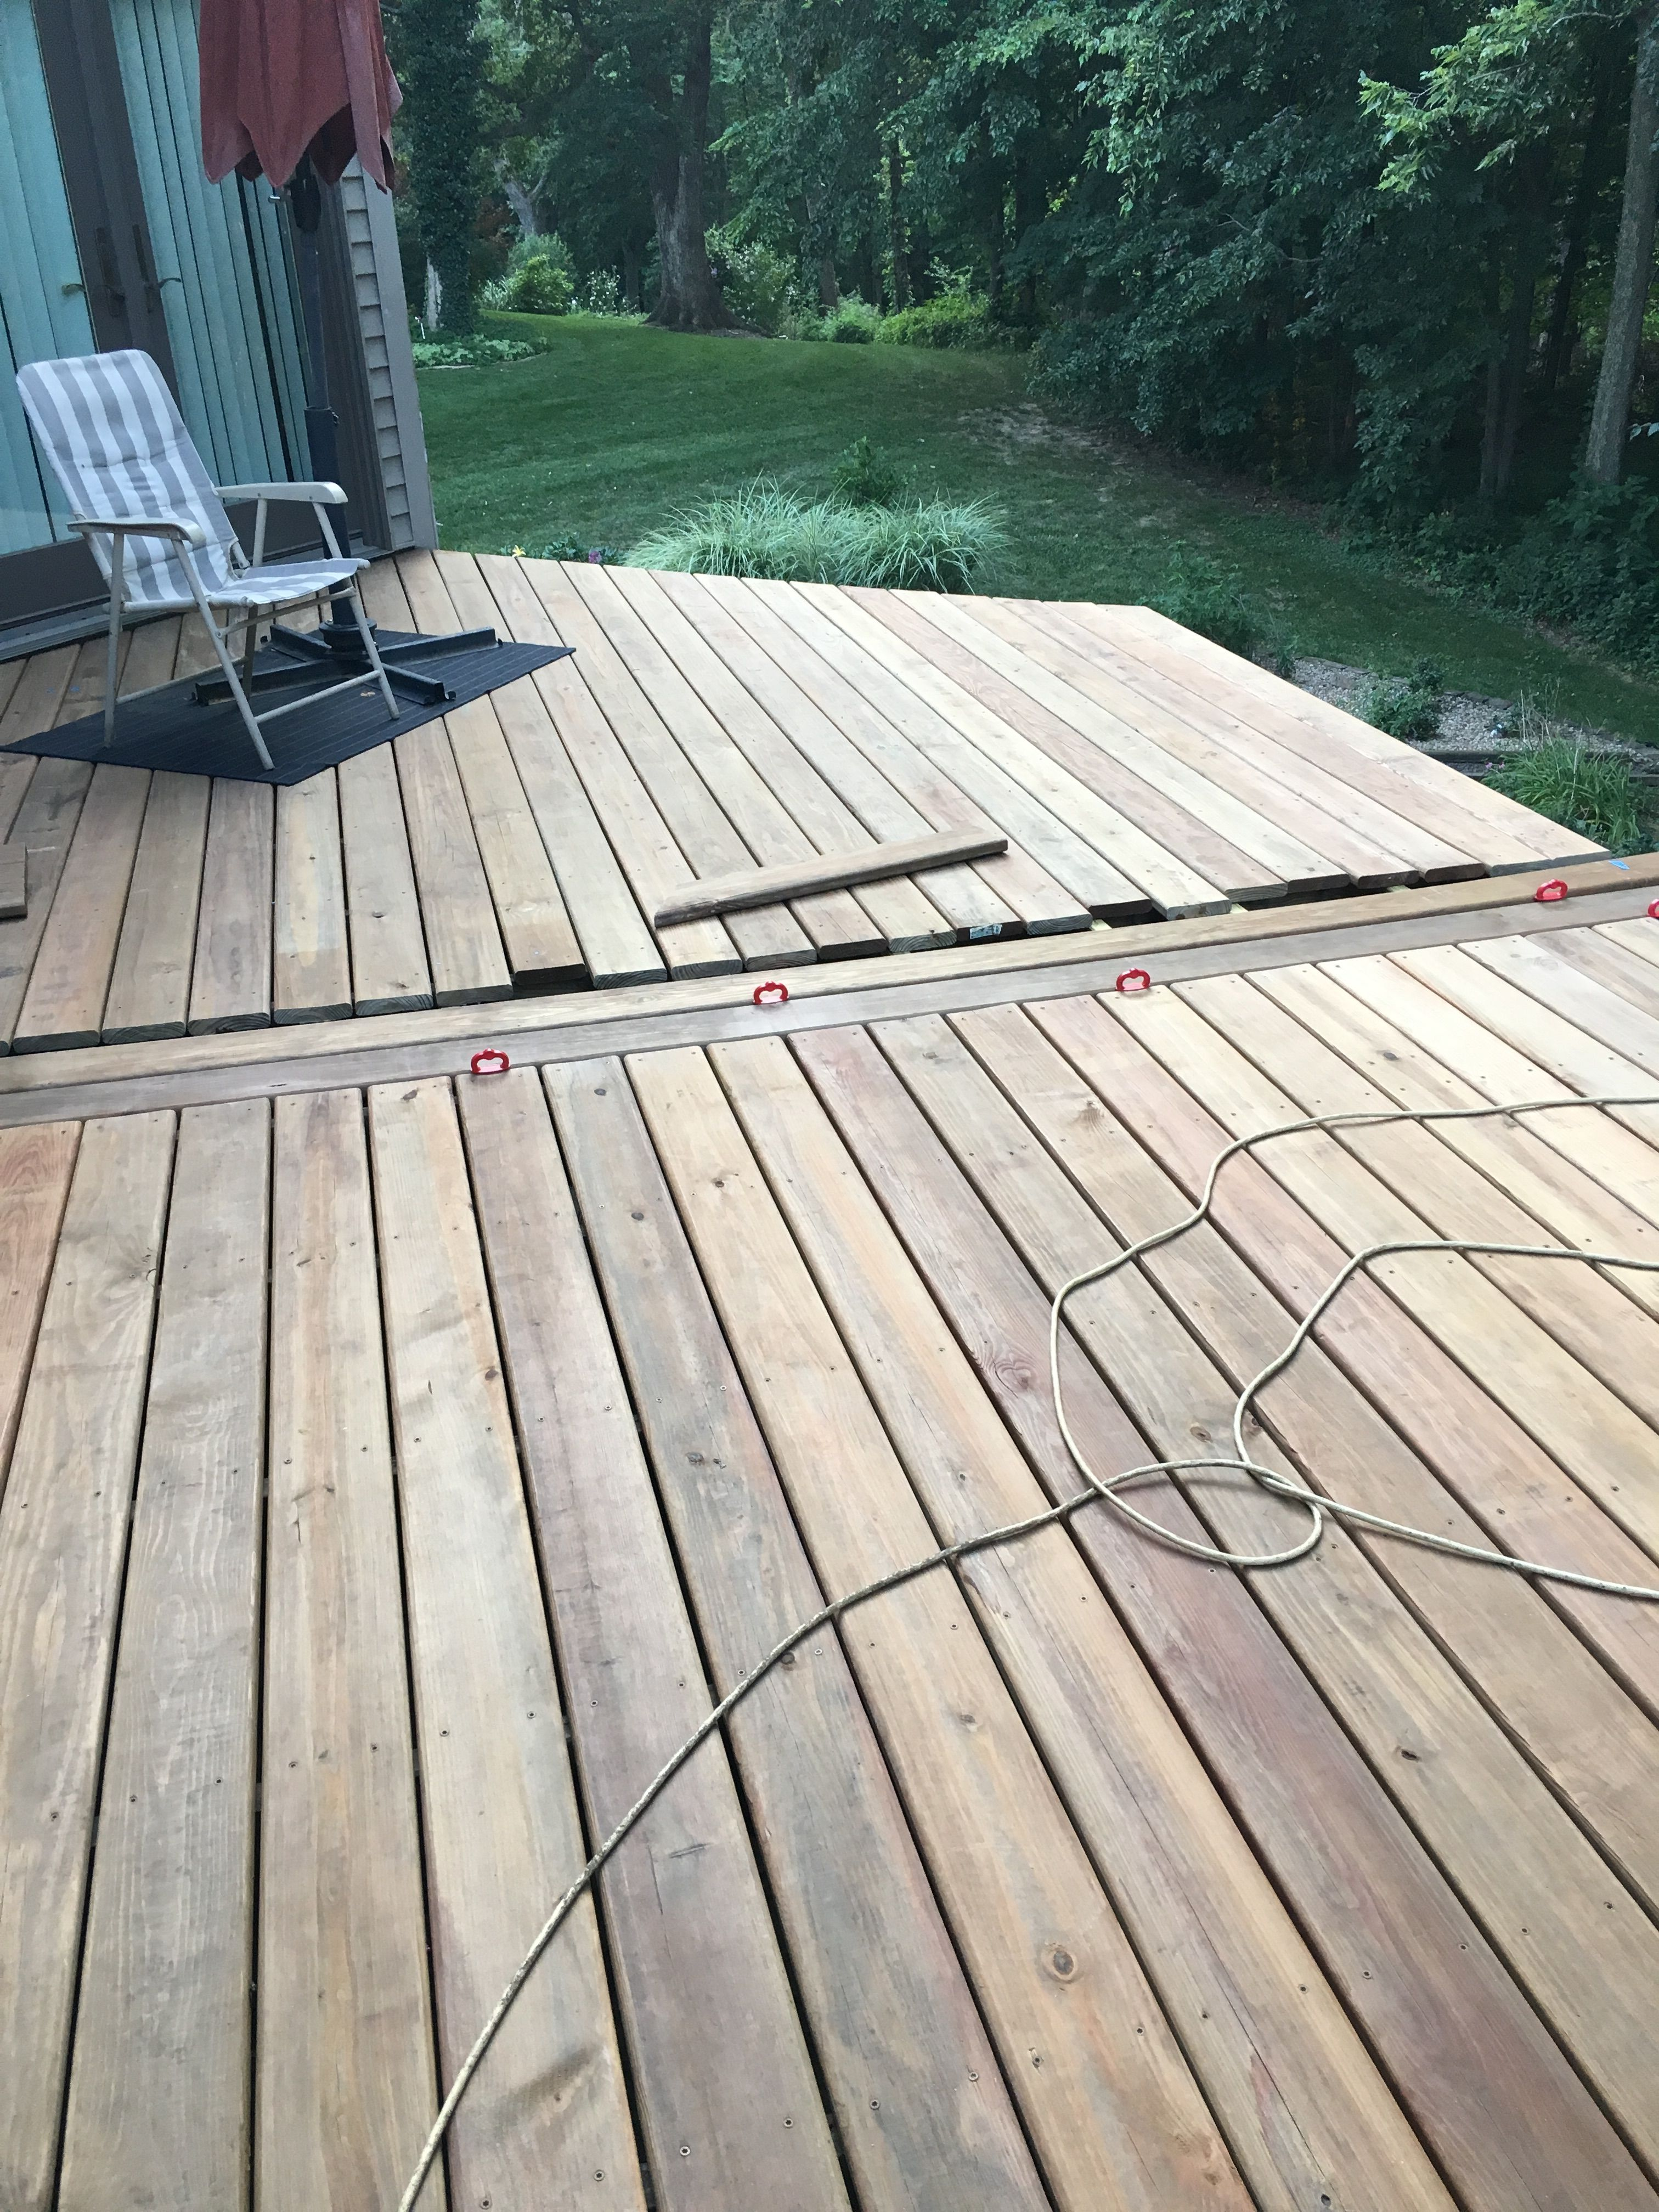 Dryfit And Install Middle Deck Boards May June 2017 Ac2 Cedartone Deck Boards From Menards 2017 Deck Renovation Deck At I Deck Renovation Deck Deck Boards